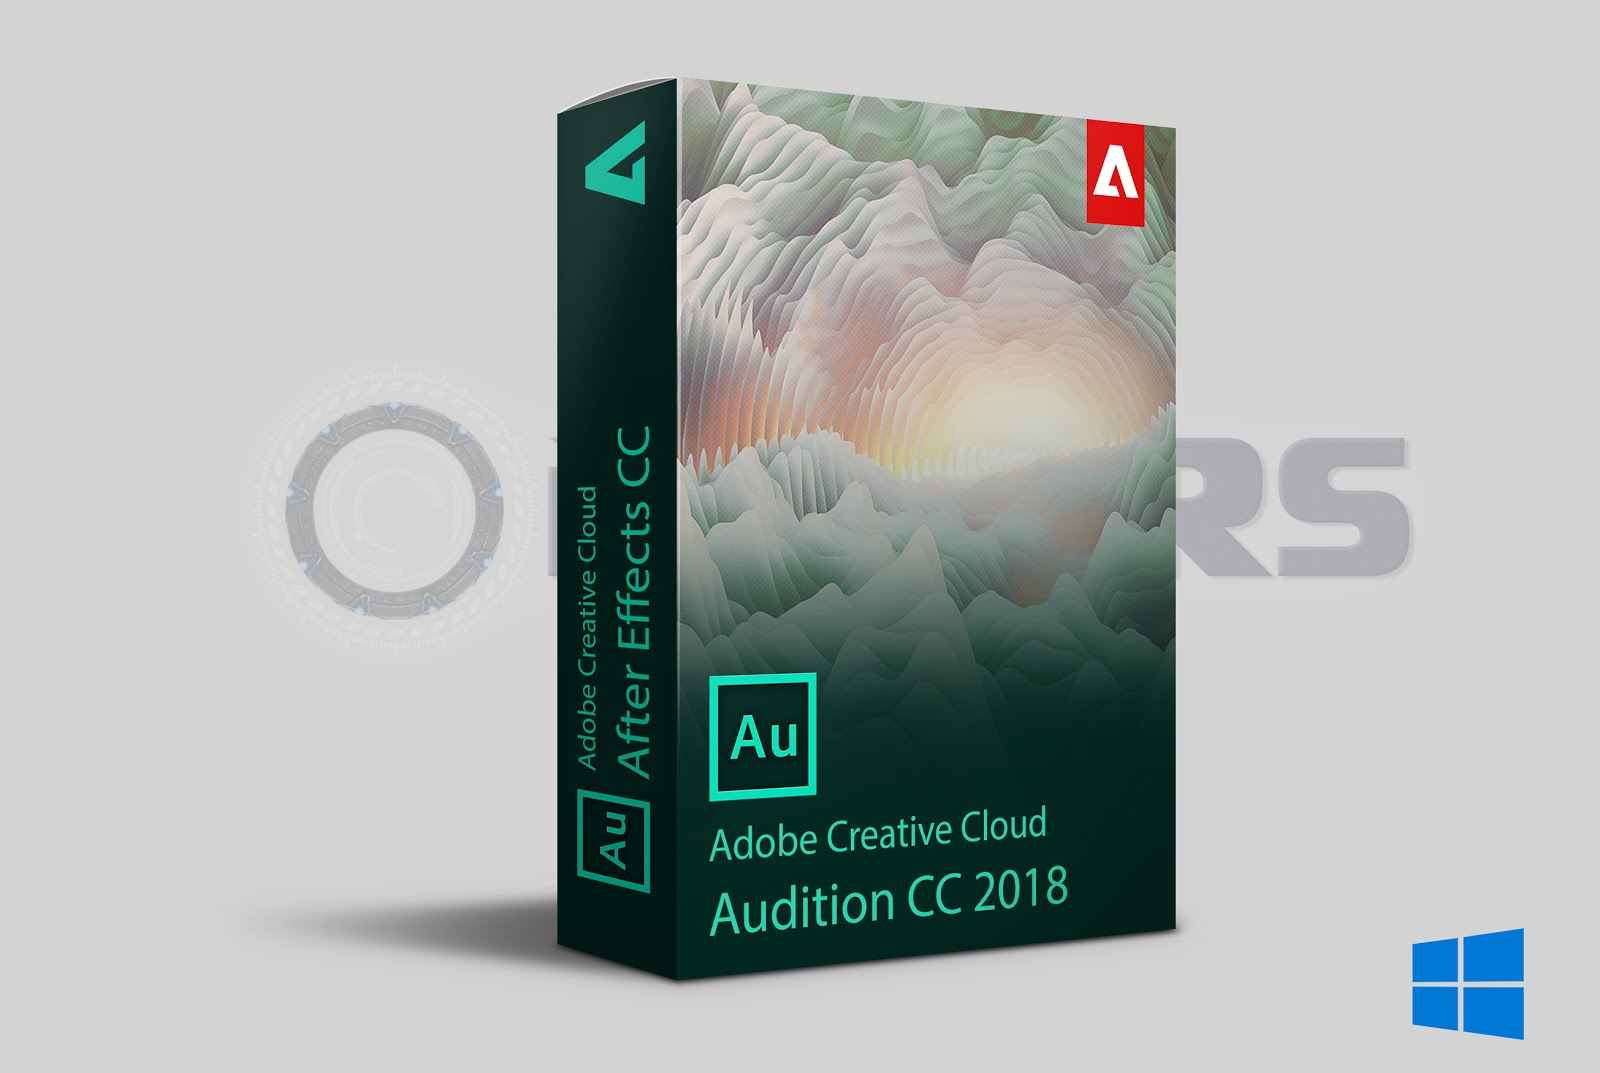 Download Adobe Audition CC 2018 v11 0 2 49 x64 - OBITORS